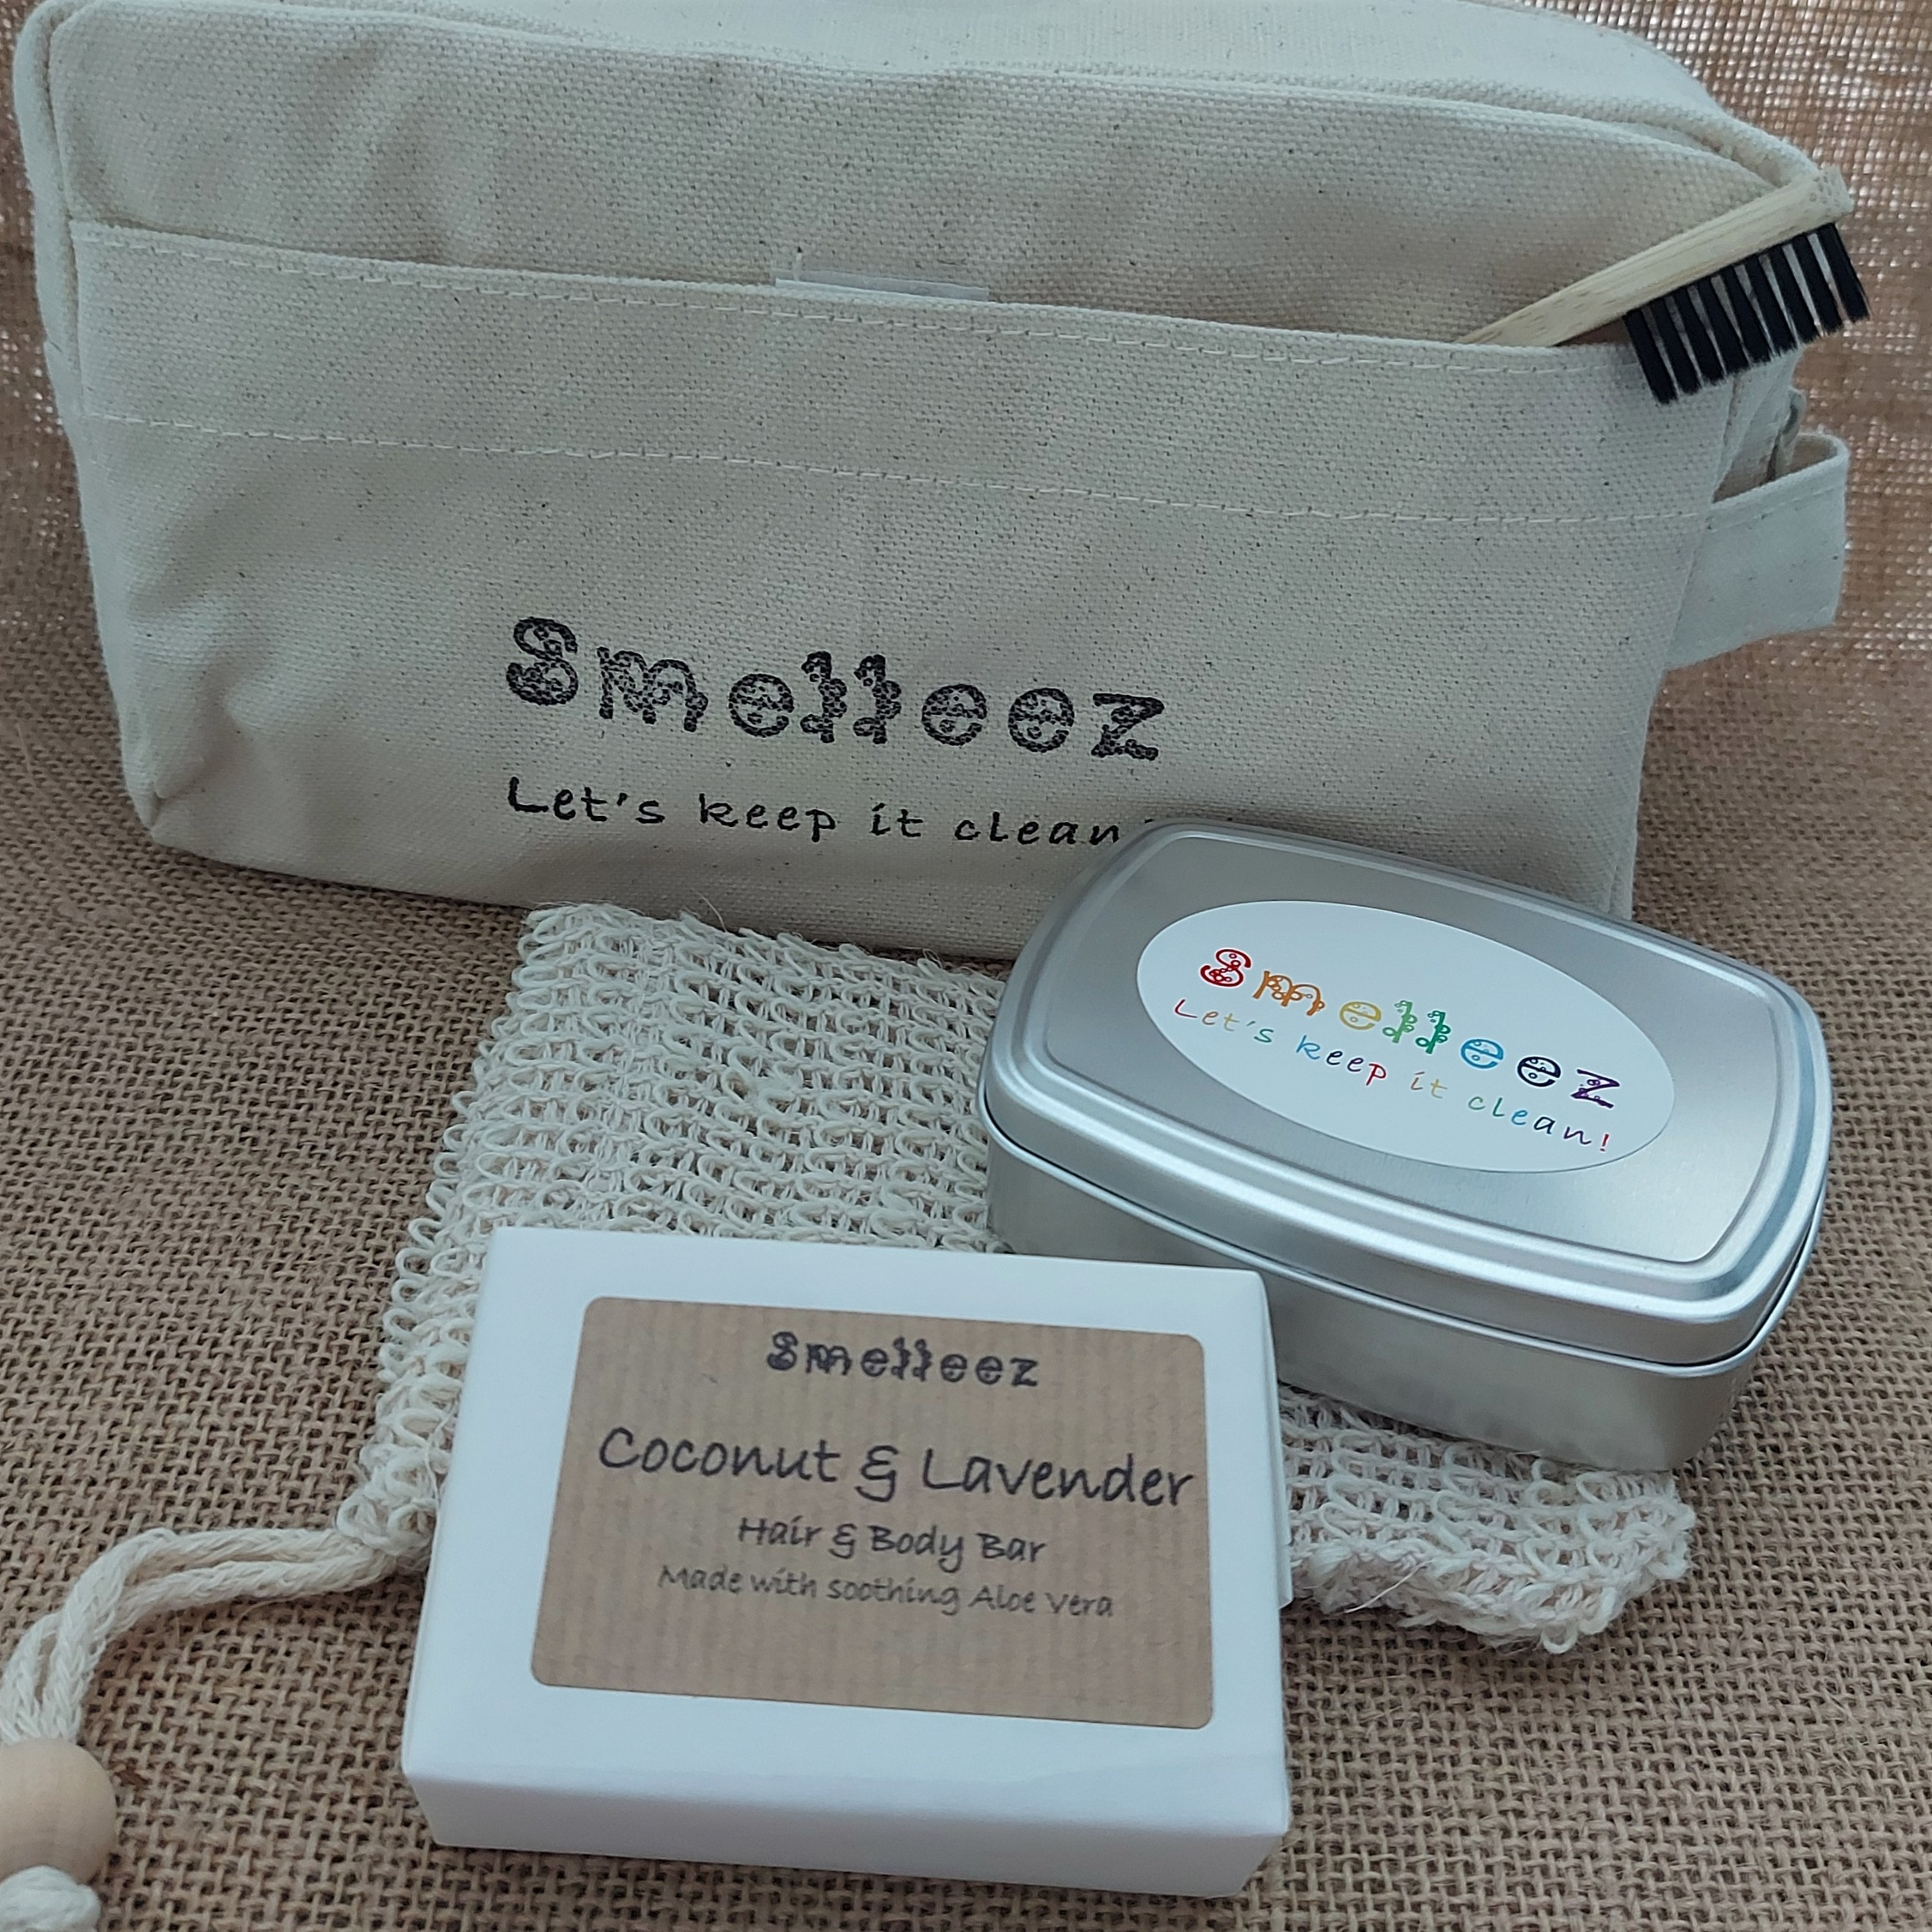 Less Waste Toiletry Bag